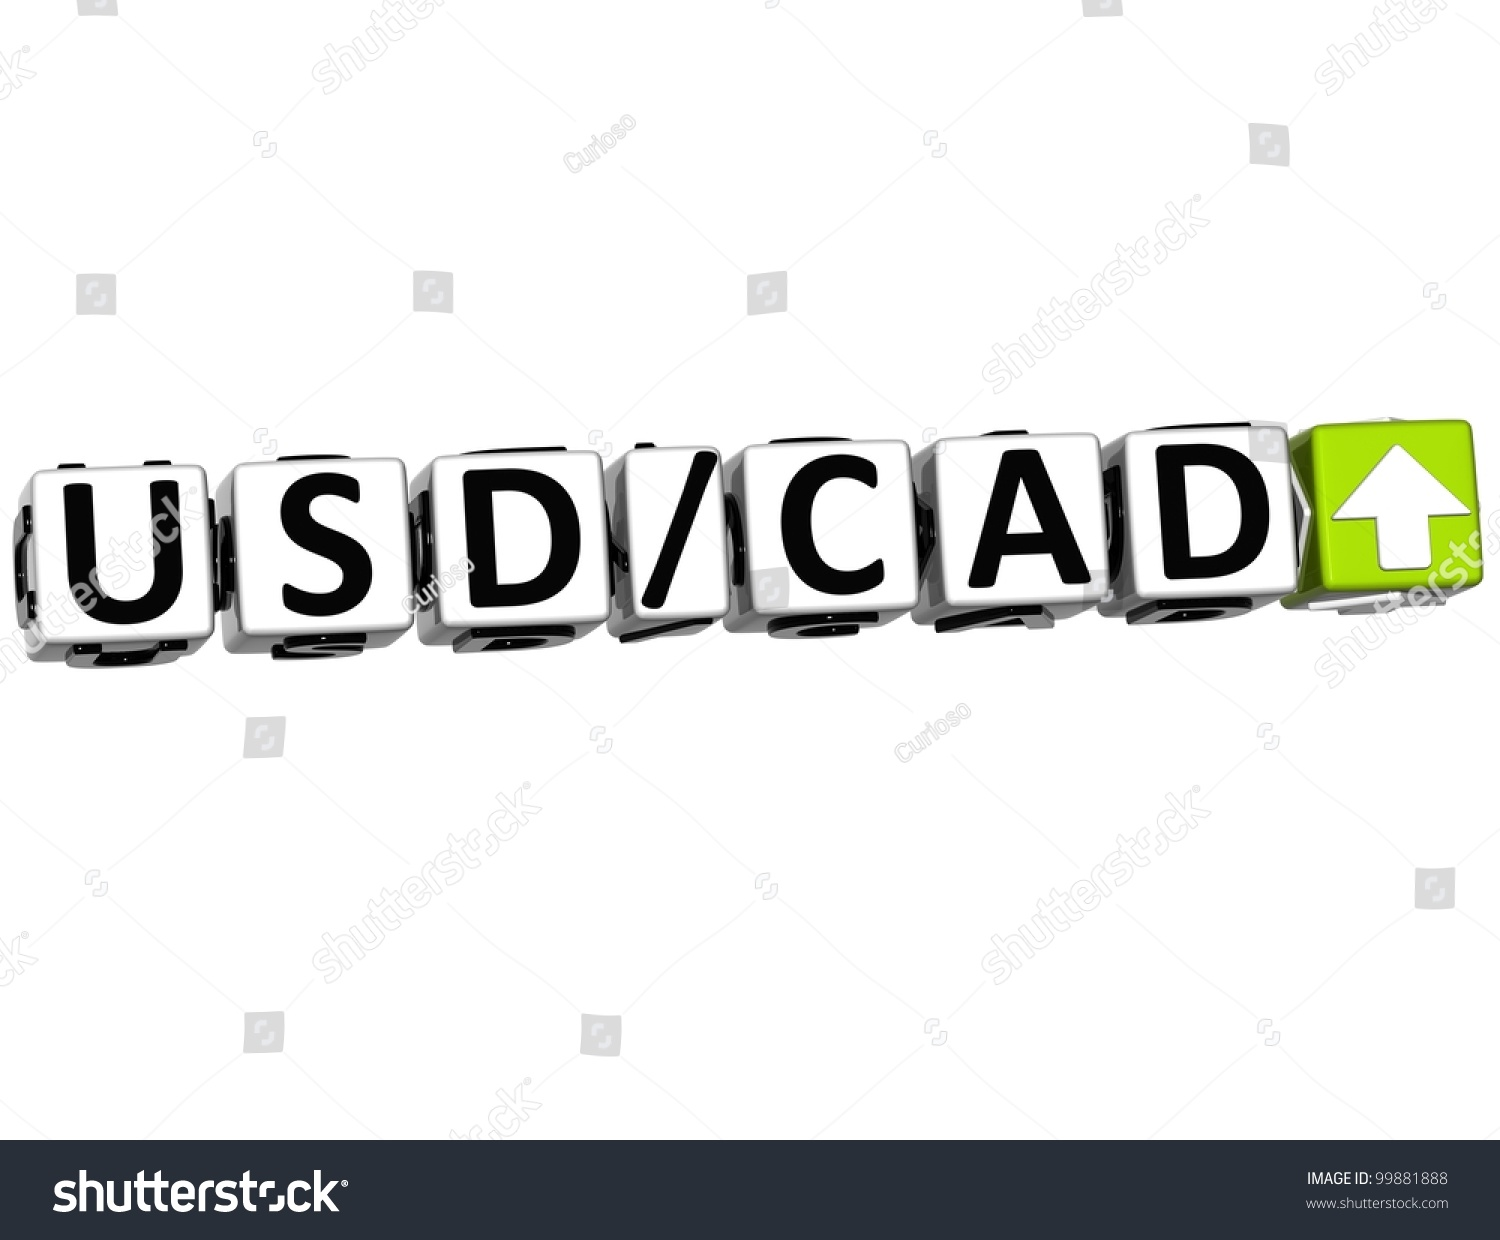 3 D Currency Usd Cad Rate Concept Stock Illustration 99881888